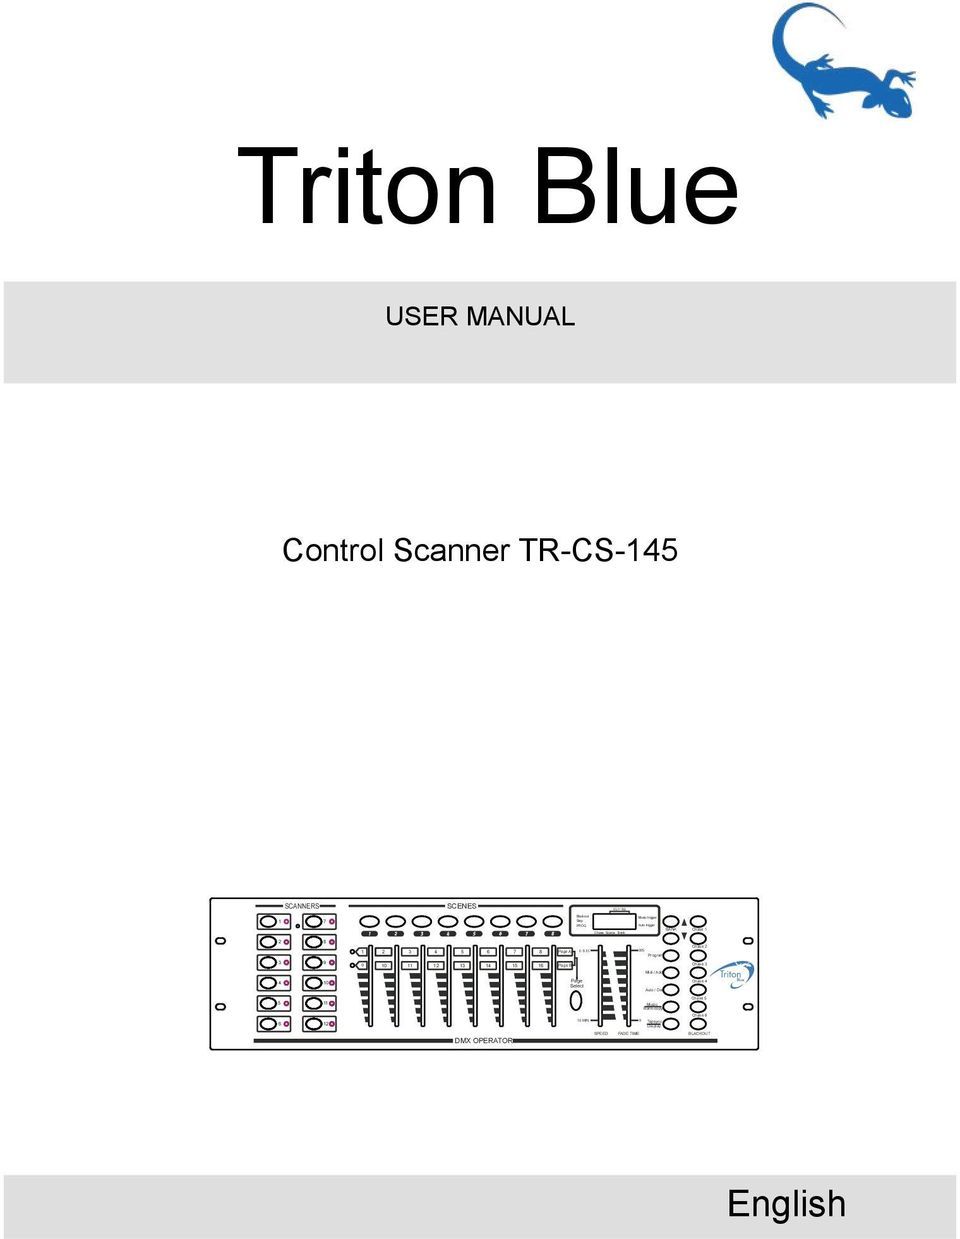 6 BLACKOUT Triton Blue USER MANUAL Control Scanner TR-CS-145 SCANNERS SCENES 1 7 2 8 1 2 3 4 5 6